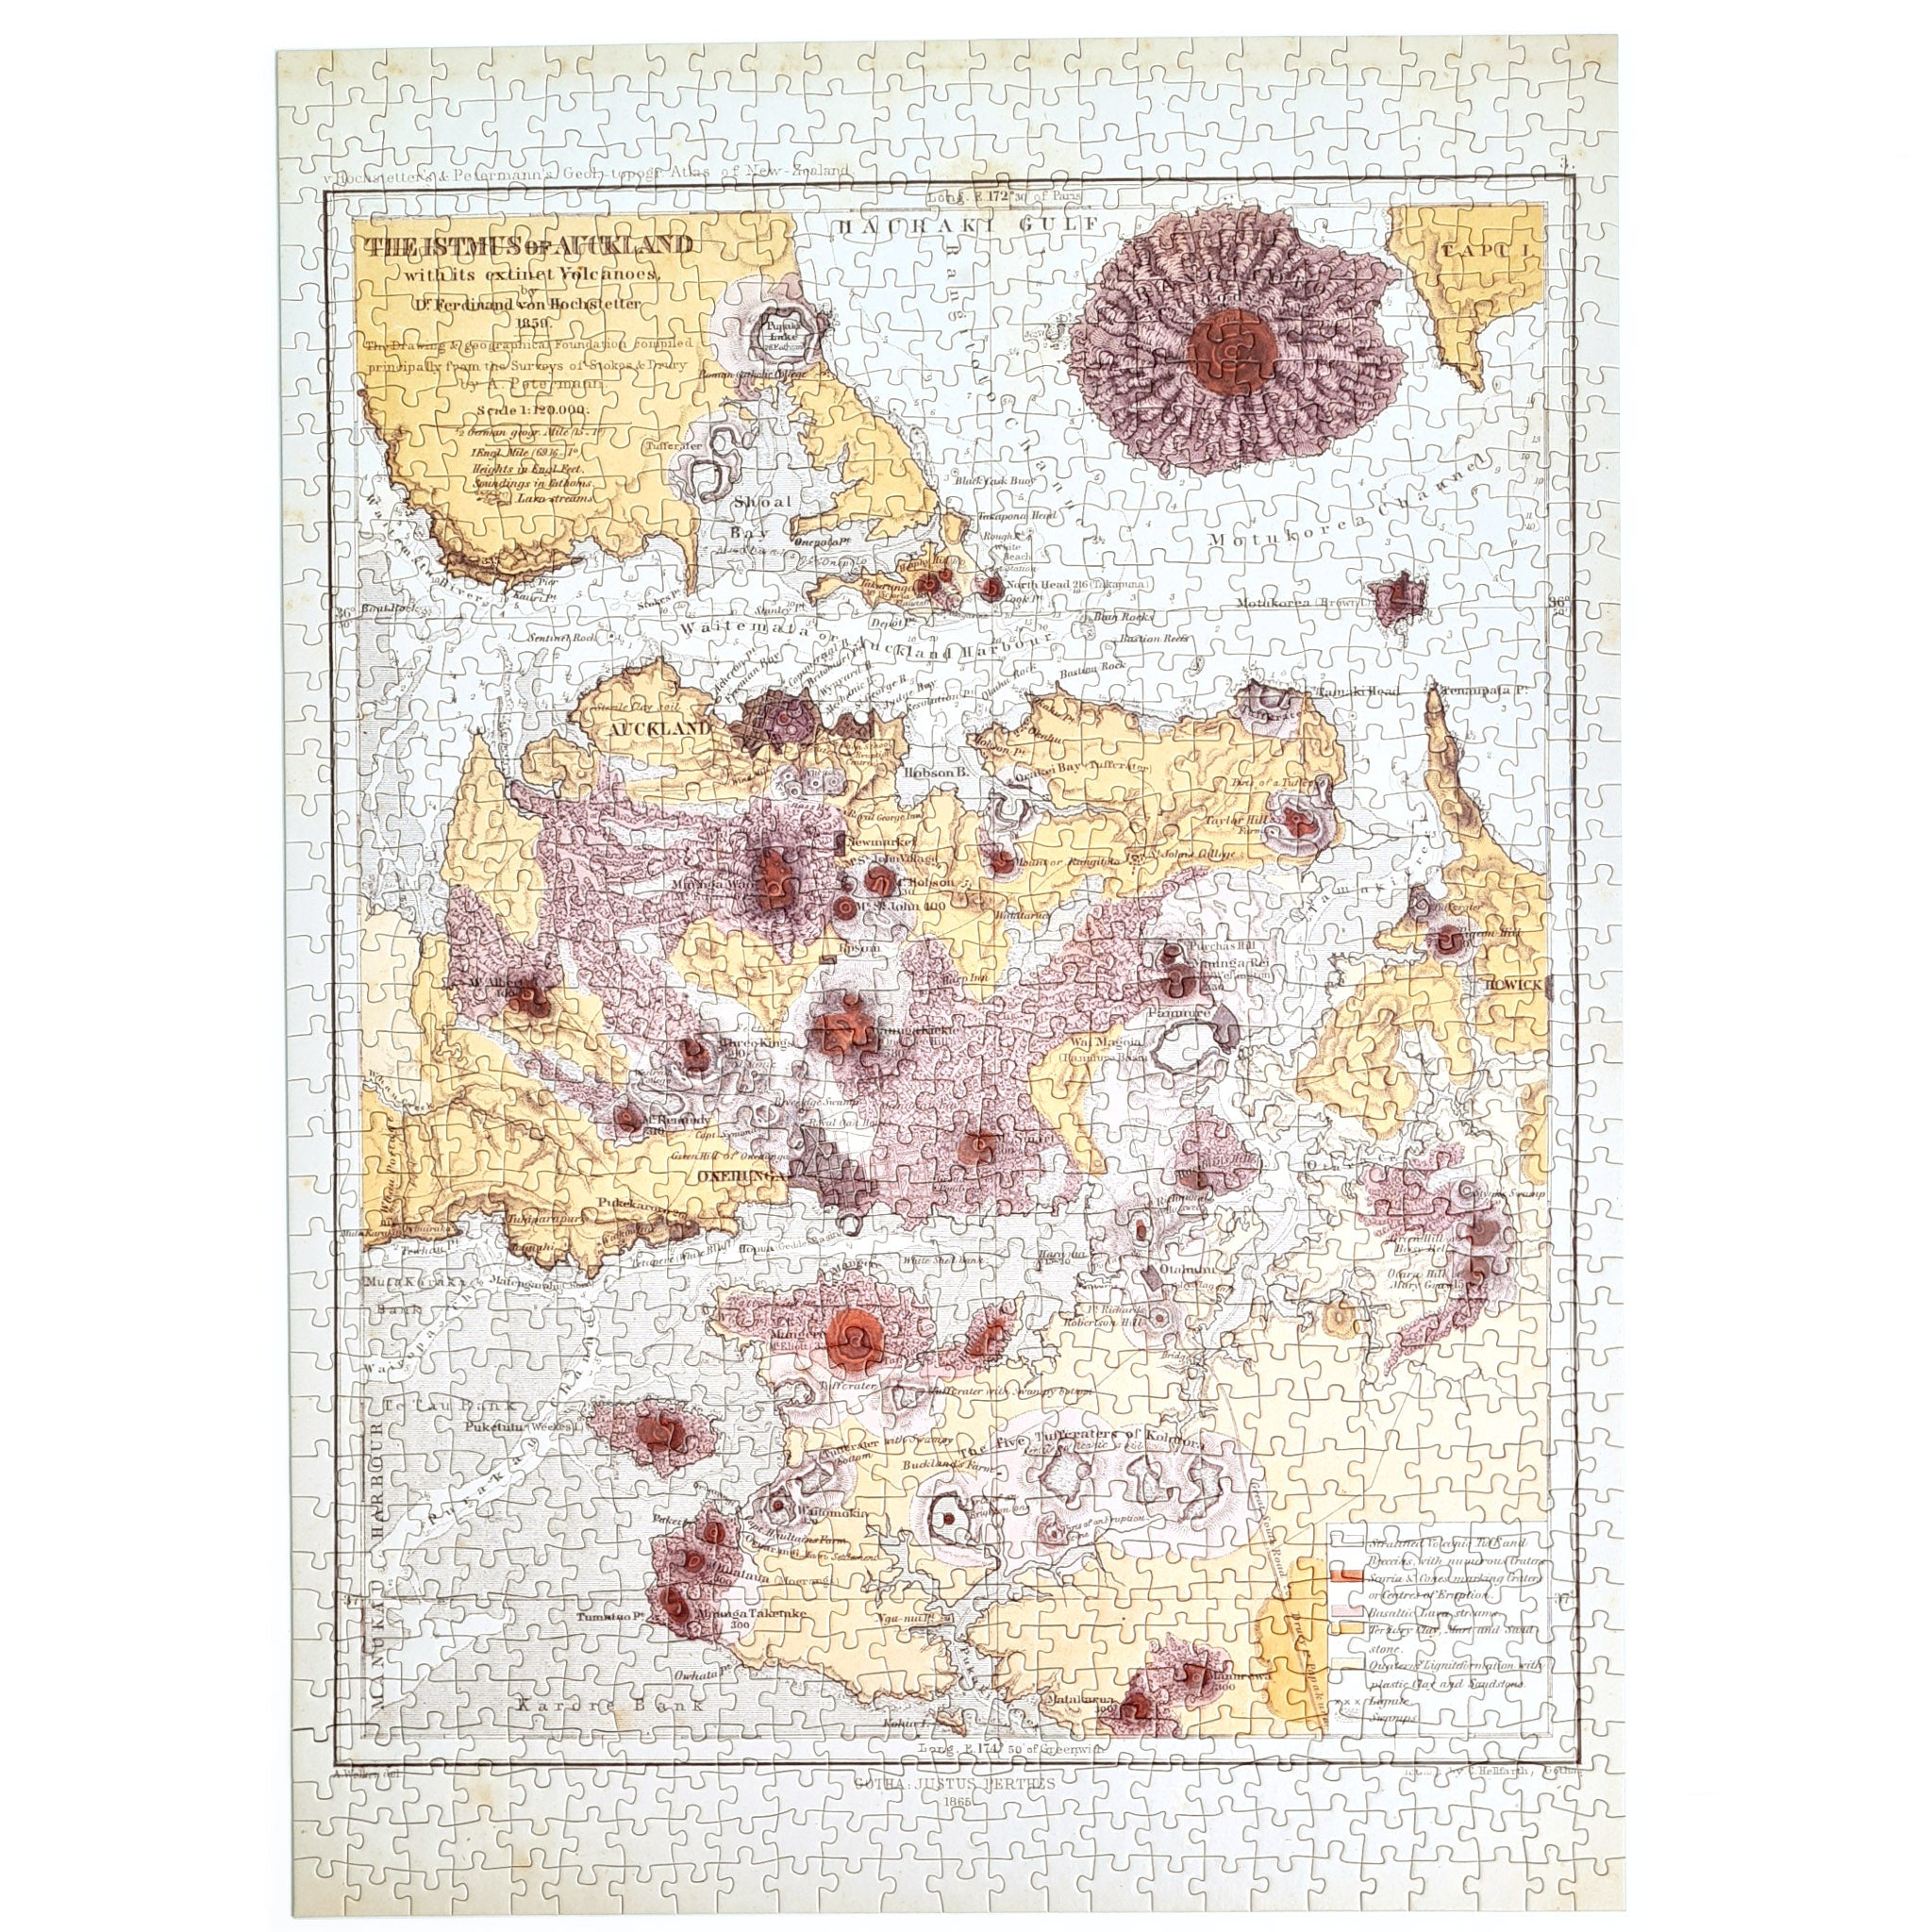 Auckland Volcanoes Puzzle Image